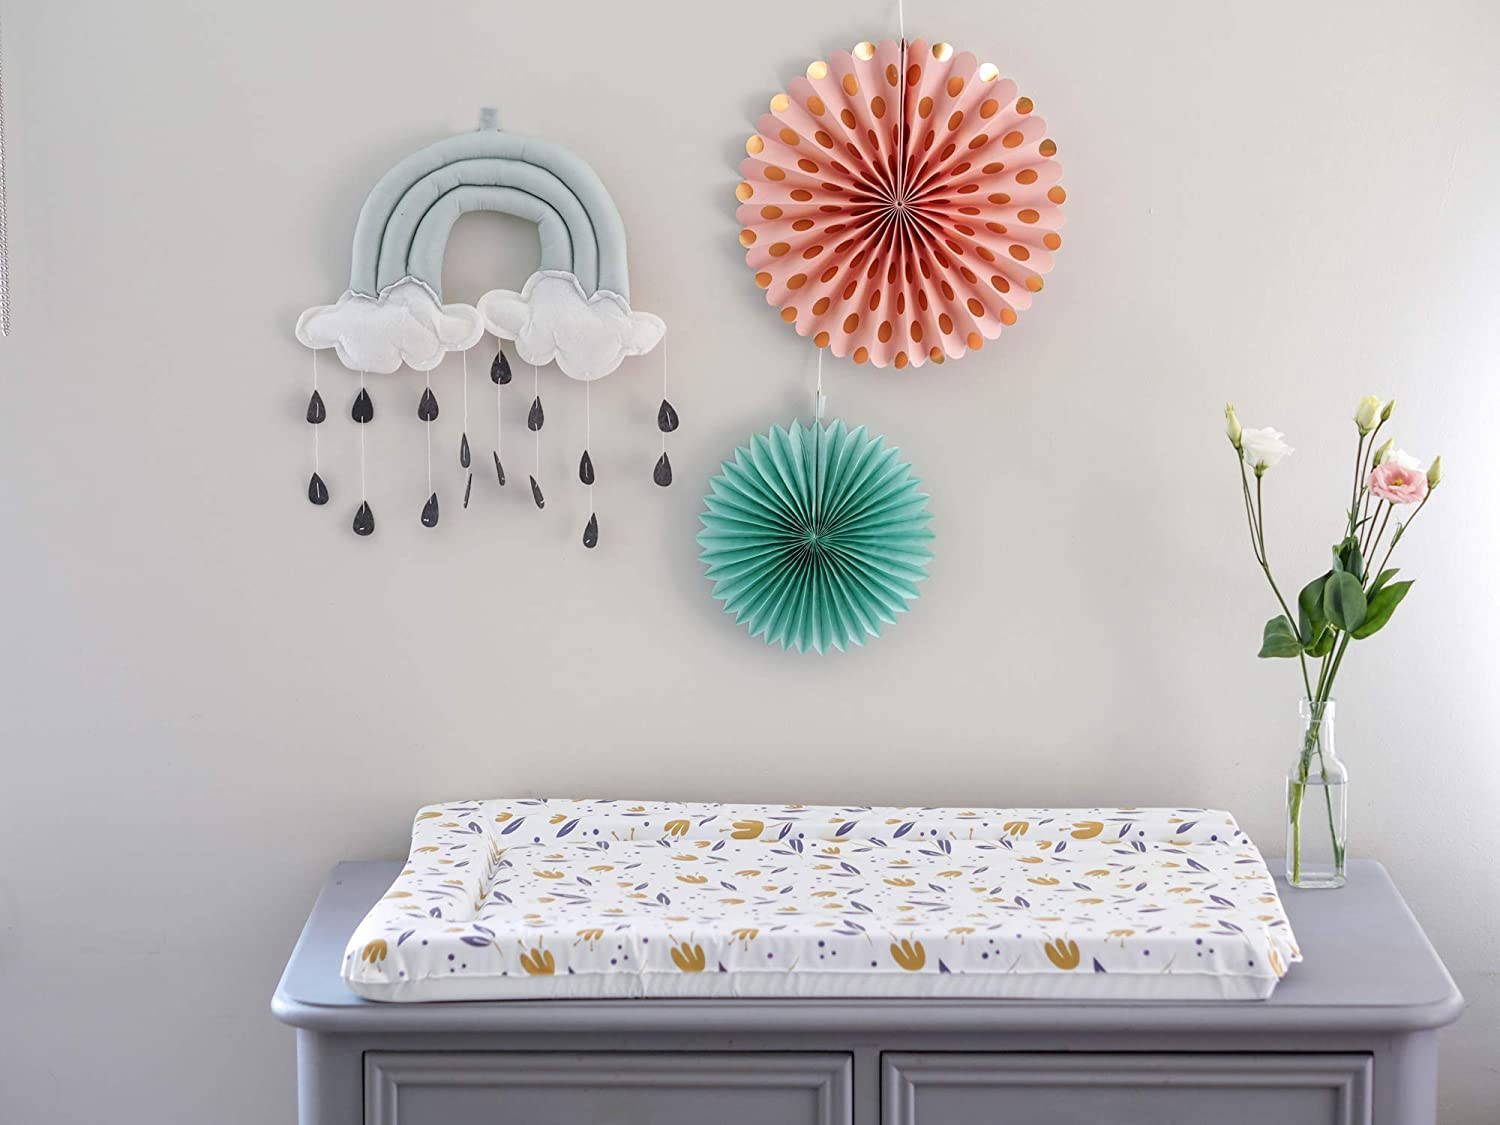 Woodland High Density Foam The Gilded Bird Baby Changing Mat 72cm x 46cm Raised Edges Change Mat Extra Padded Wipeable